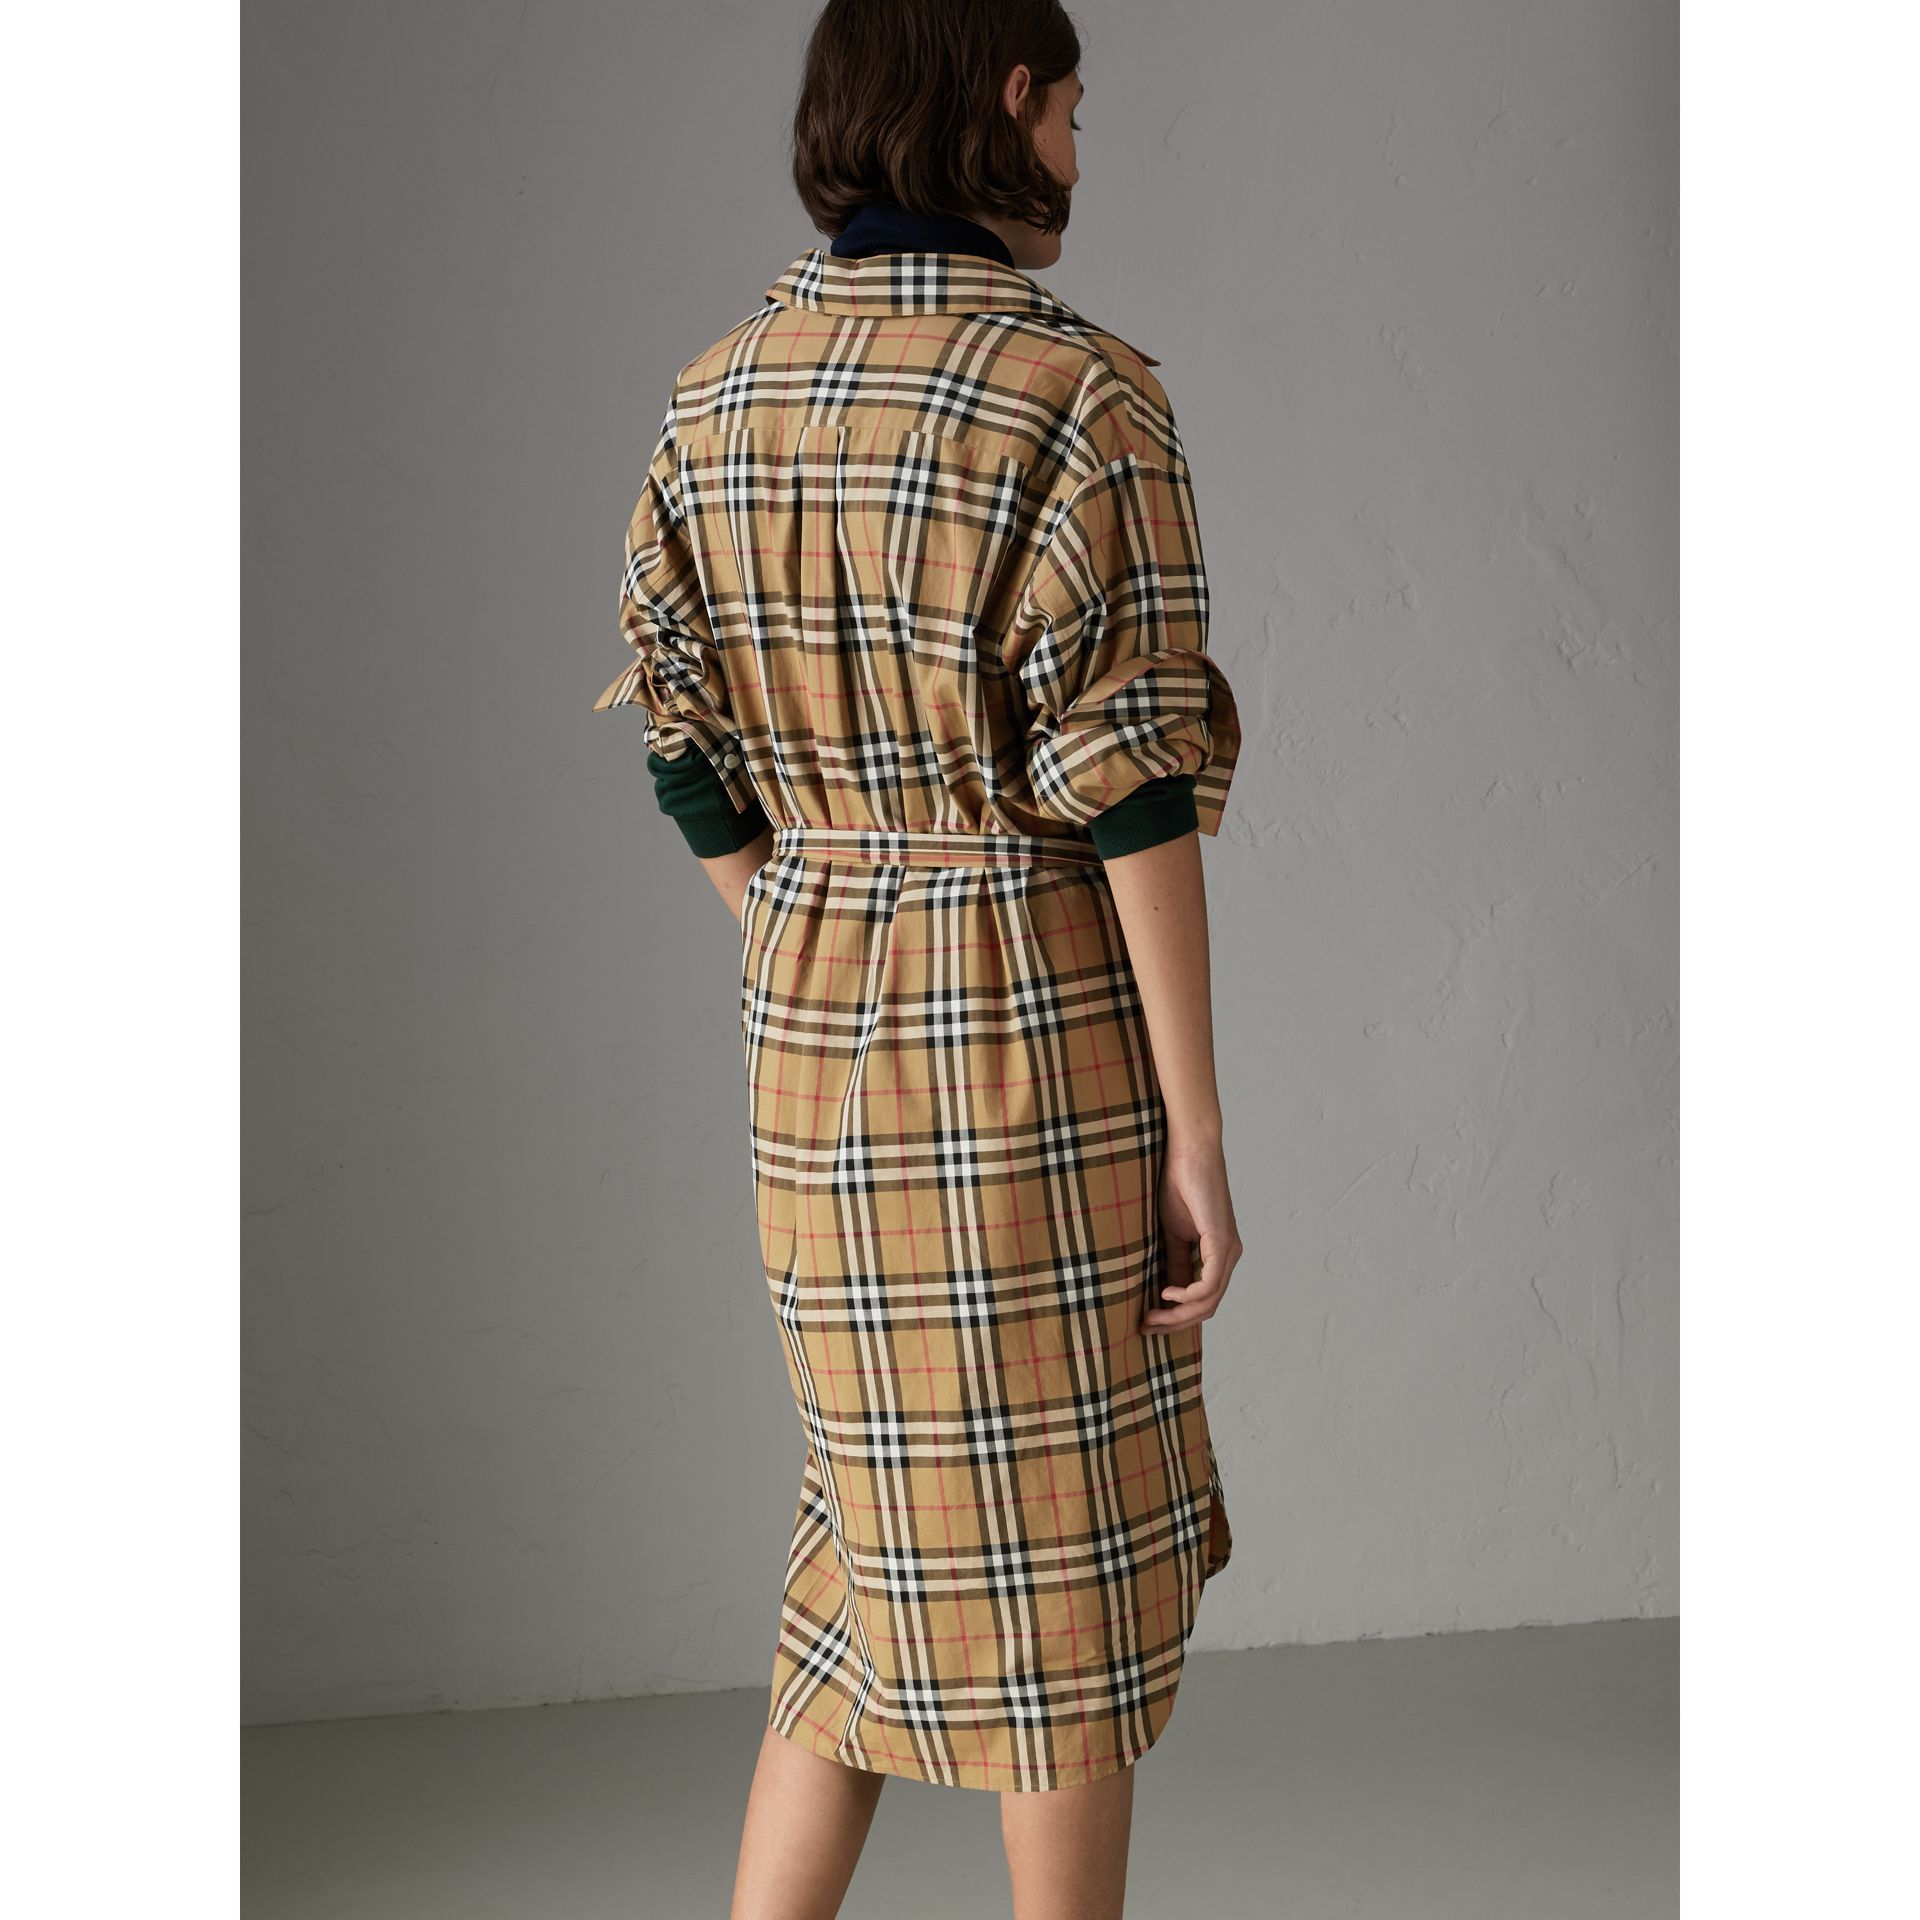 Tie-waist Vintage Check Cotton Shirt Dress in Antique Yellow - Women | Burberry - gallery image 2